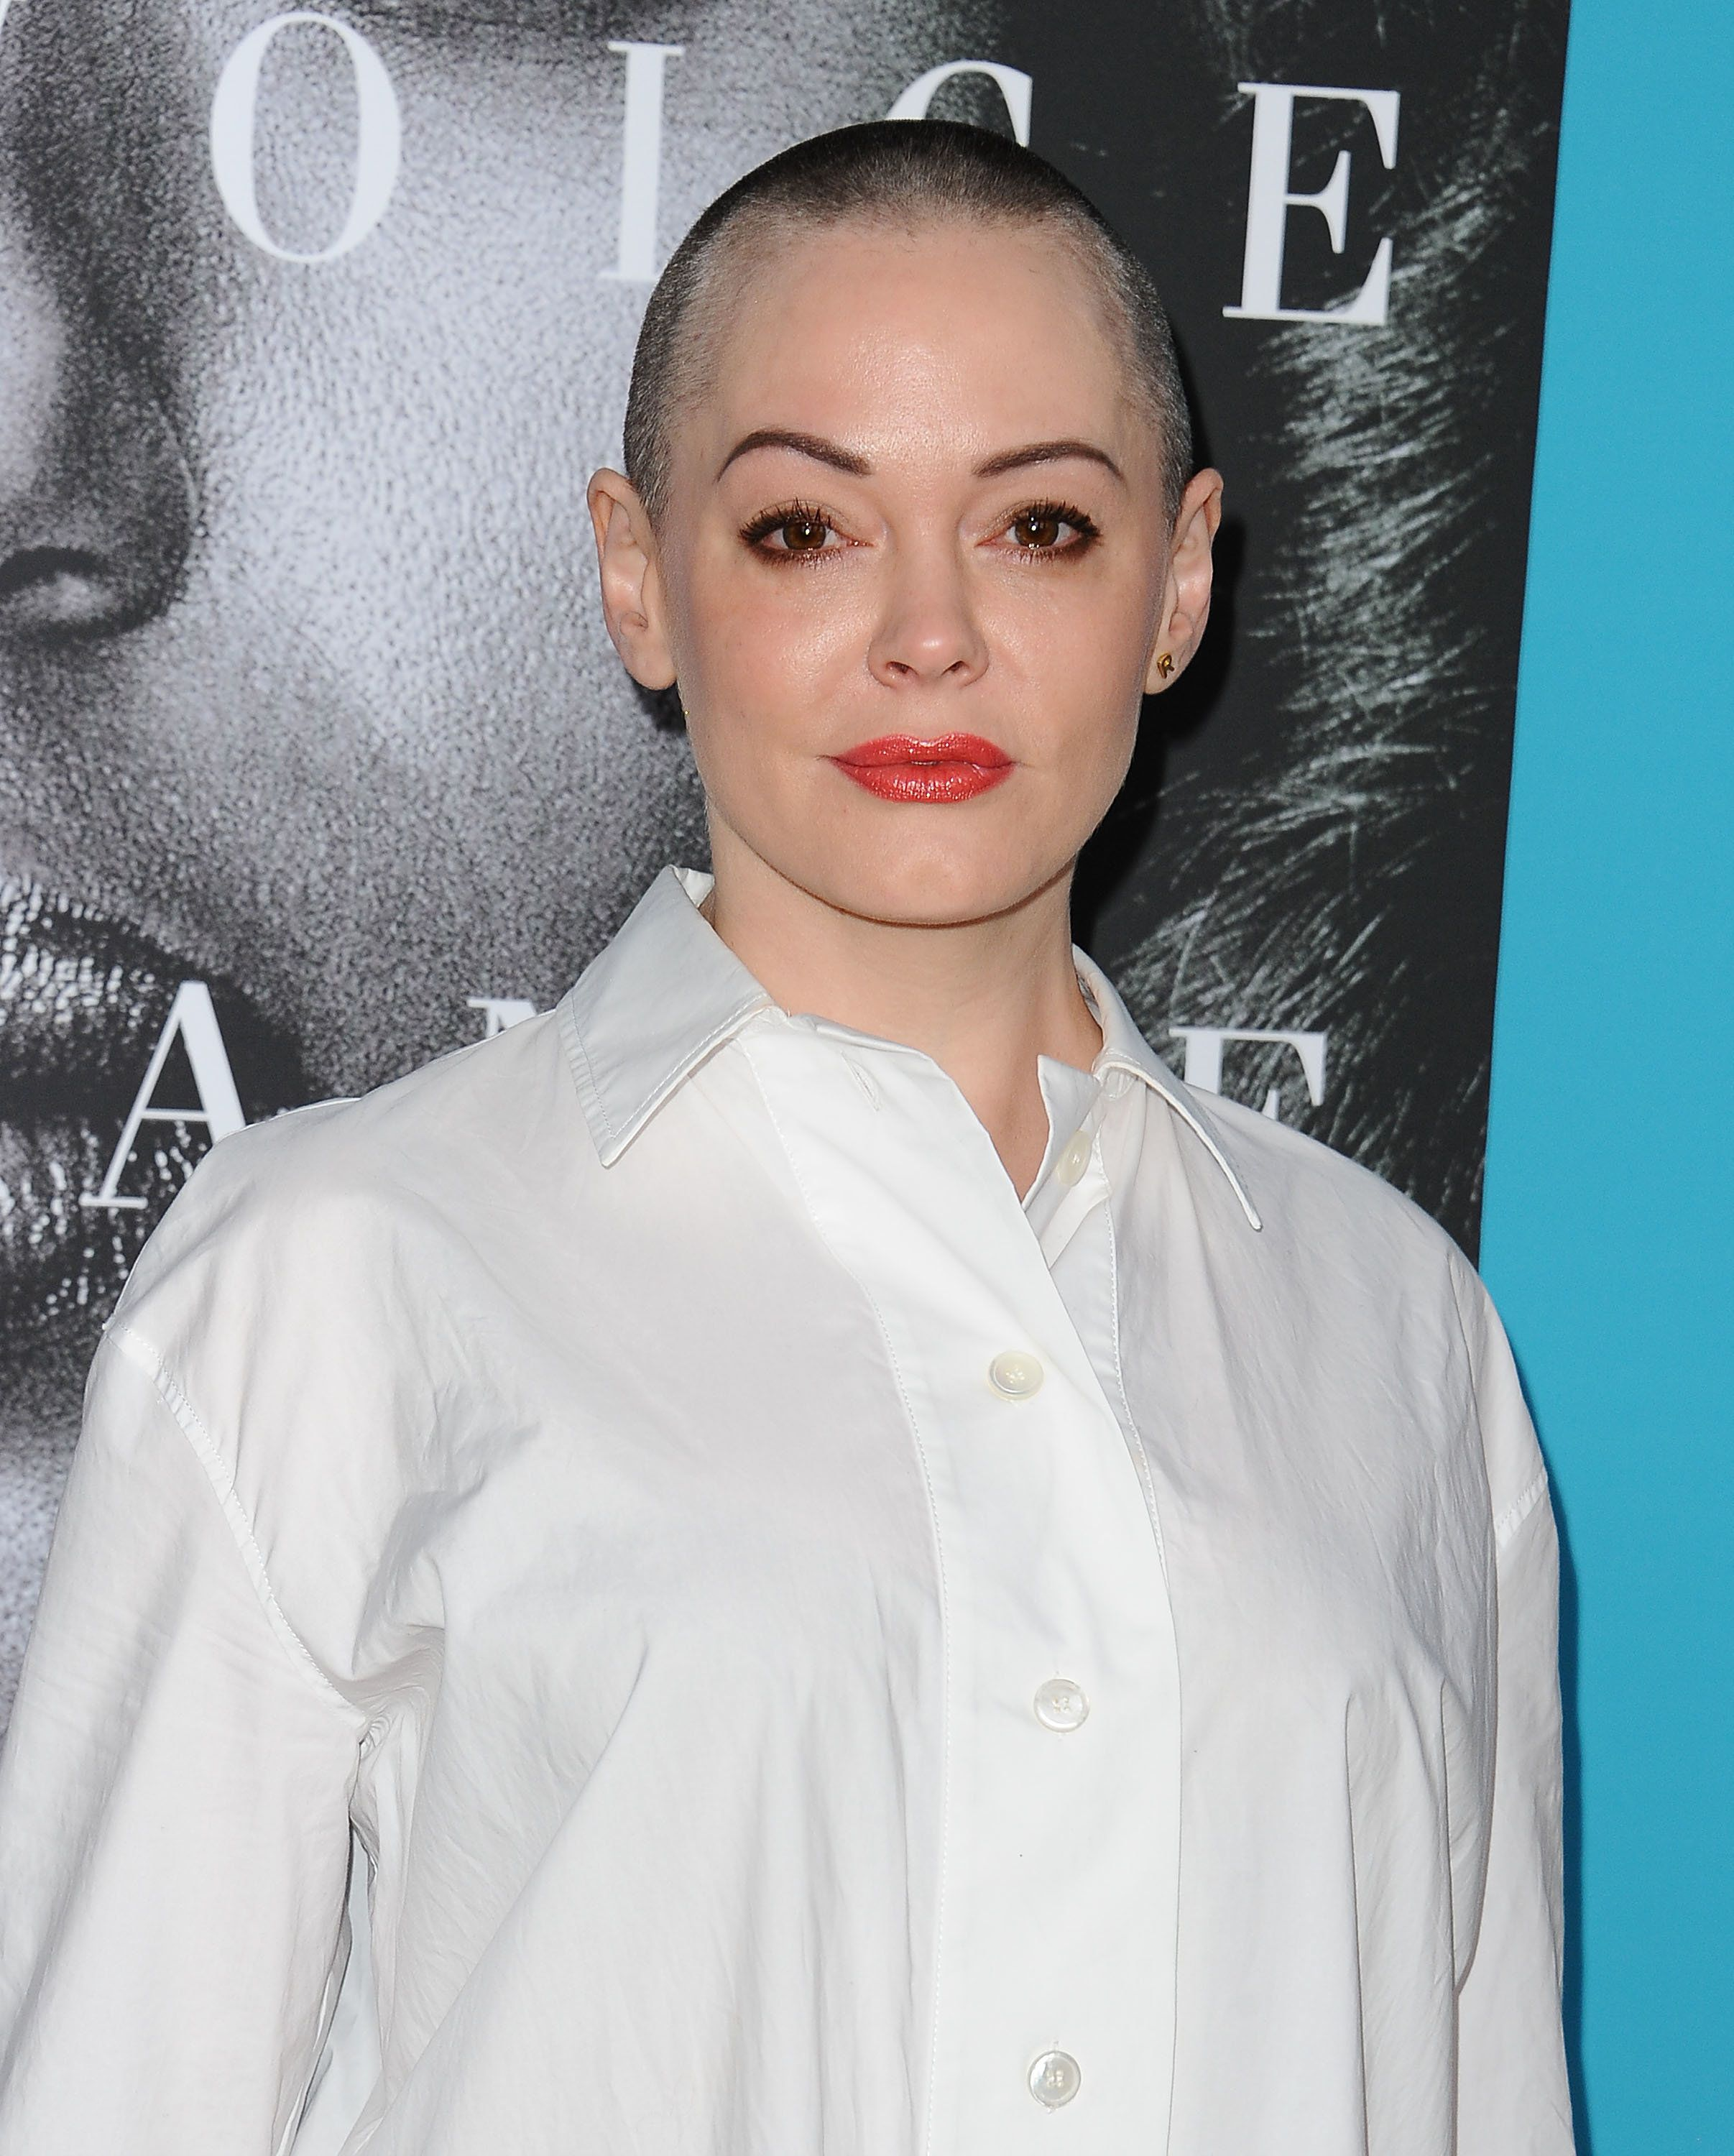 Twitter Reacts to Rose McGowan's Account Suspension